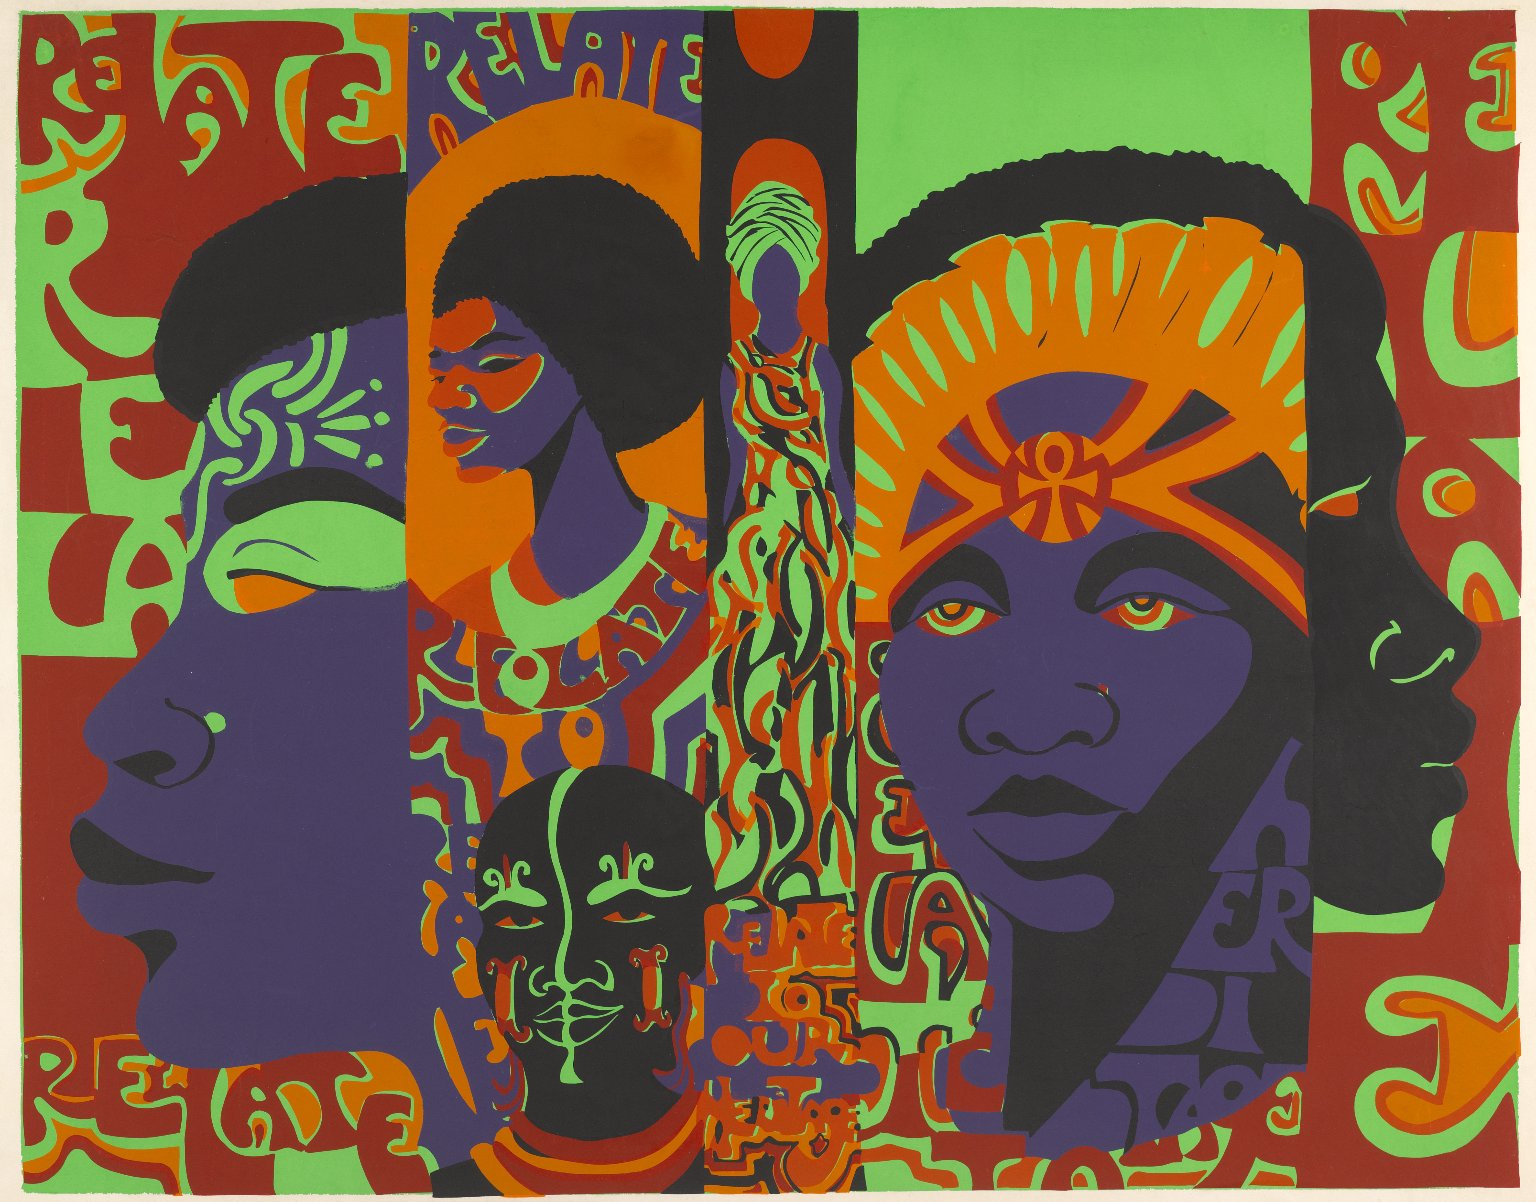 Barbara Jones-Hogu, Relate to Your Heritage, 1971. Brooklyn Museum, Gift of R.M. Atwater, Anna Wolfrom Dove, Alice Fiebiger, Joseph Fiebiger, Belle Campbell Harriss, and Emma L. Hyde, by exchange, Designated Purchase Fund, Mary Smith Dorward Fund, Dick S. Ramsay Fund, and Carll H. de Silver Fund © the artist. Photo: Brooklyn Museum